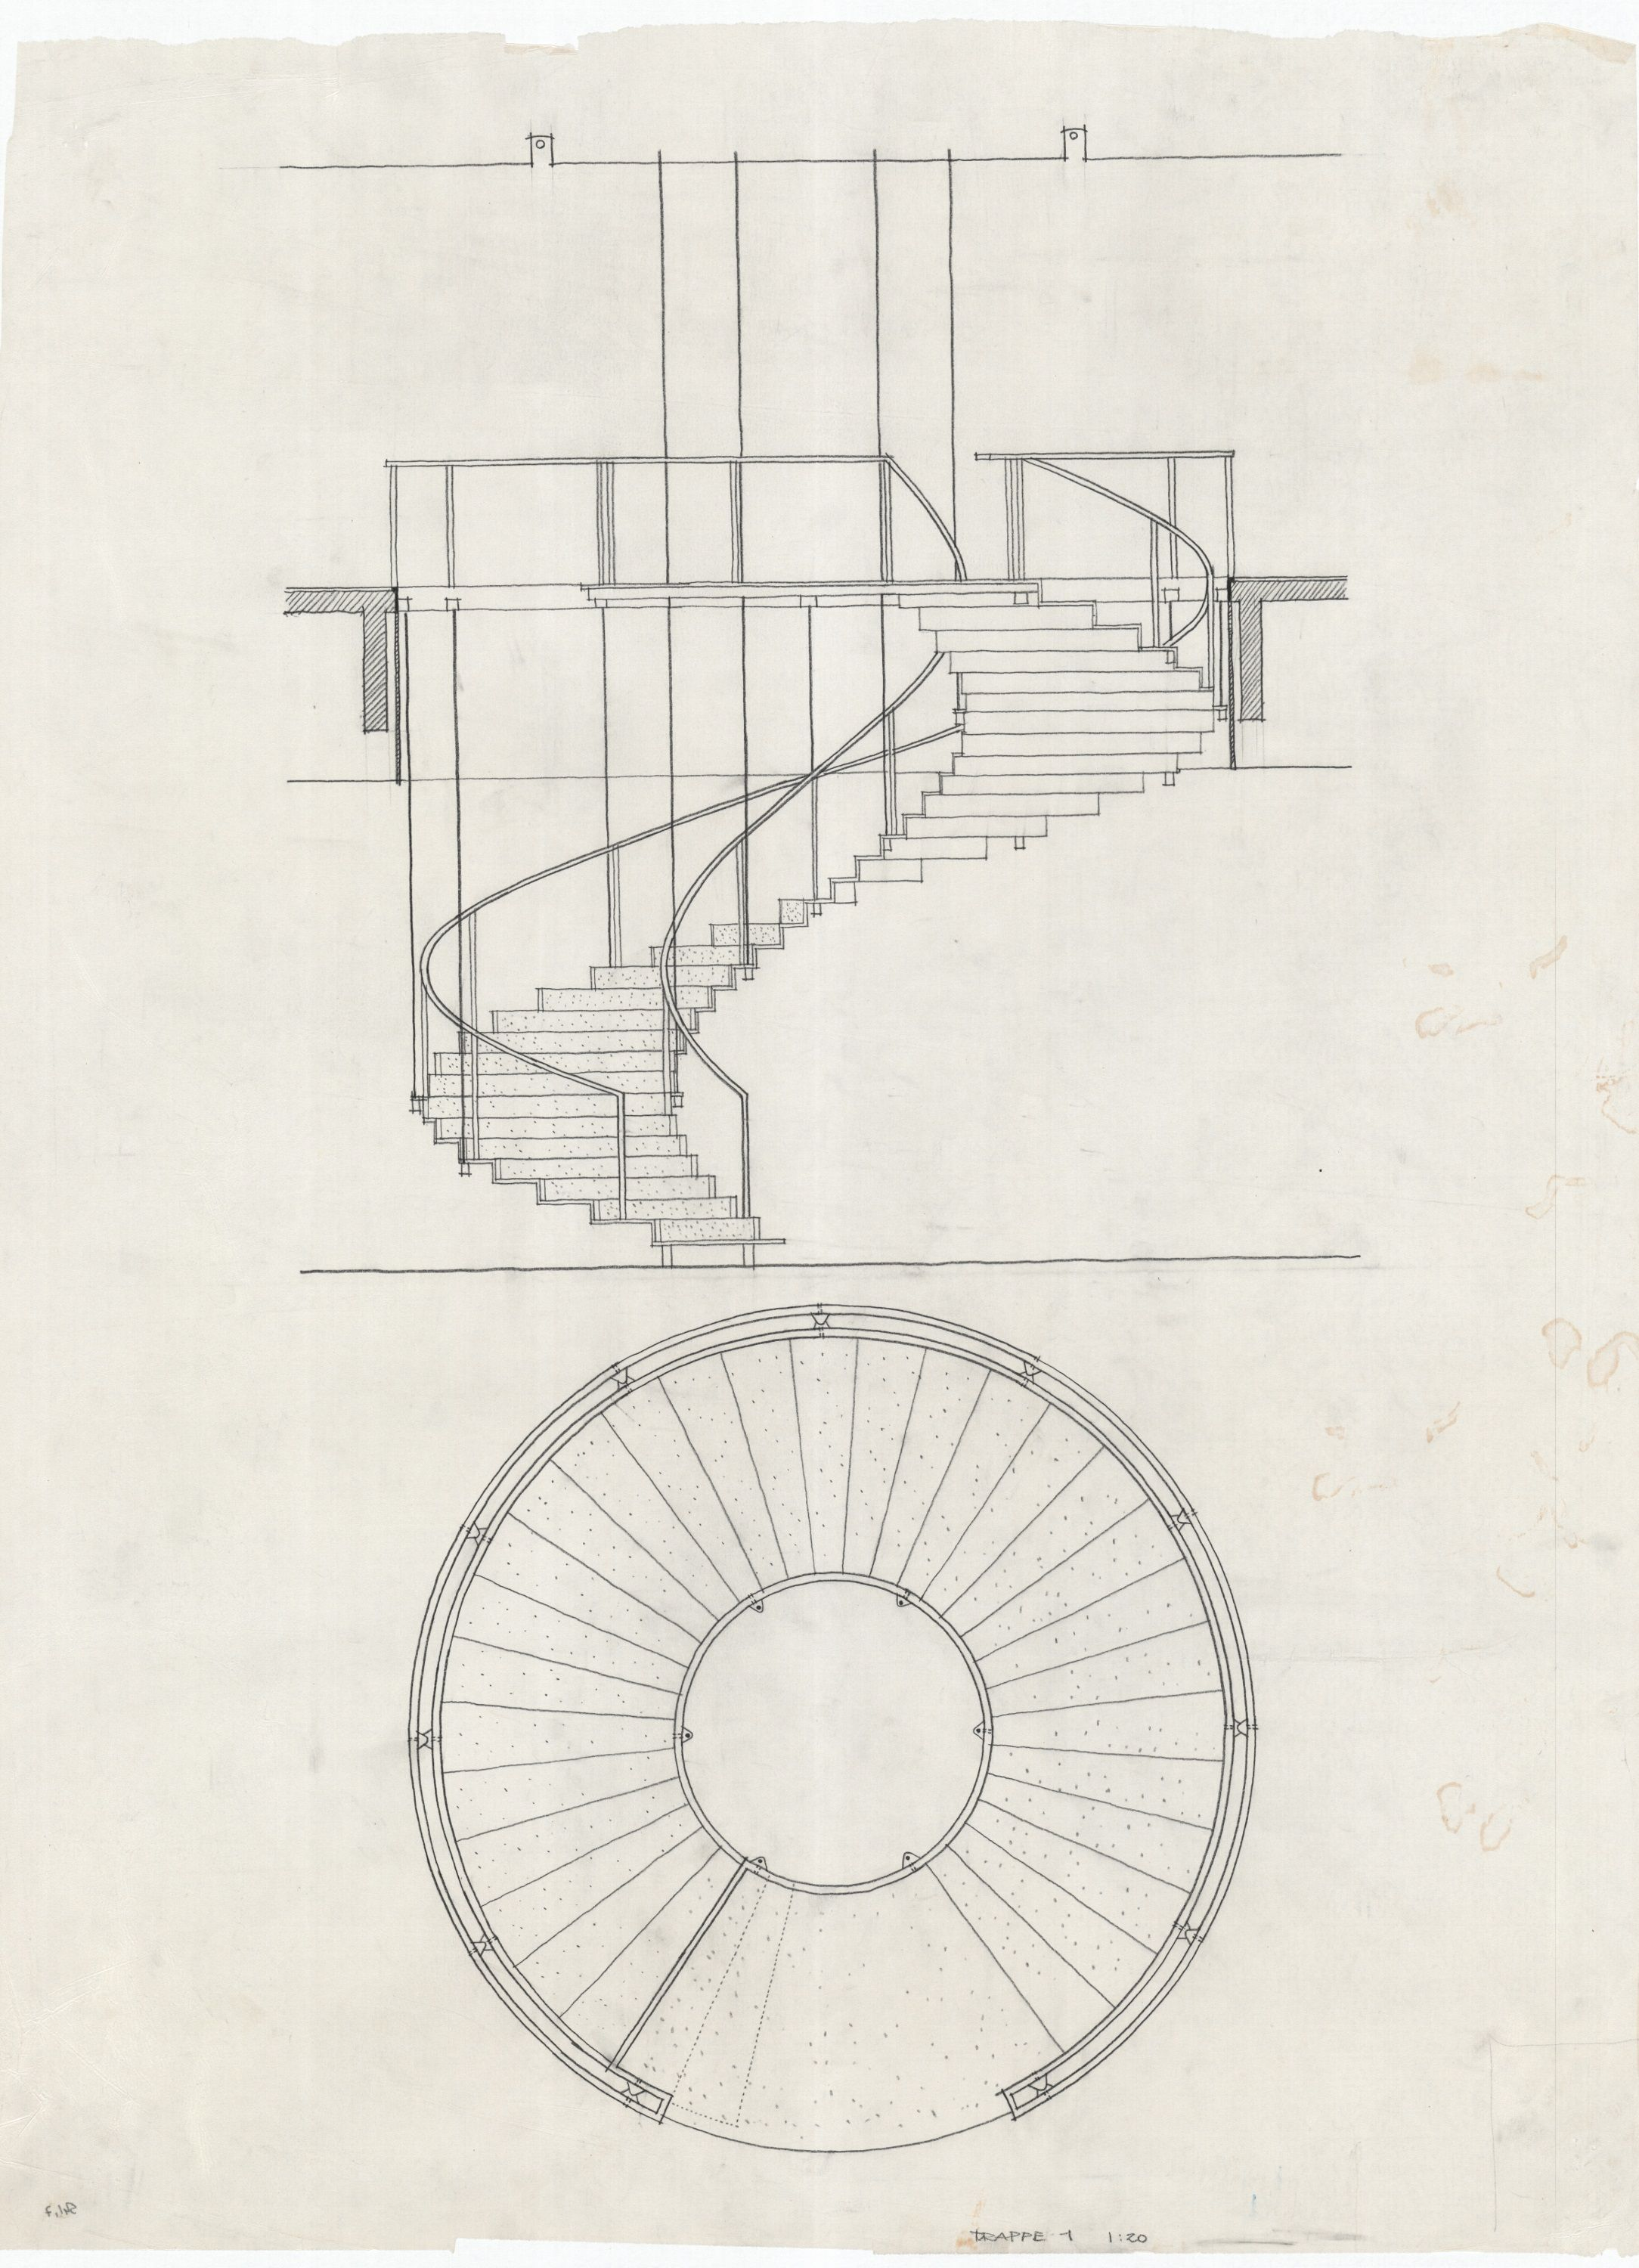 Staircase Plans Drawing Arne Jacobsen Stairs Sas Royal Hotel 1955 59 Furniture